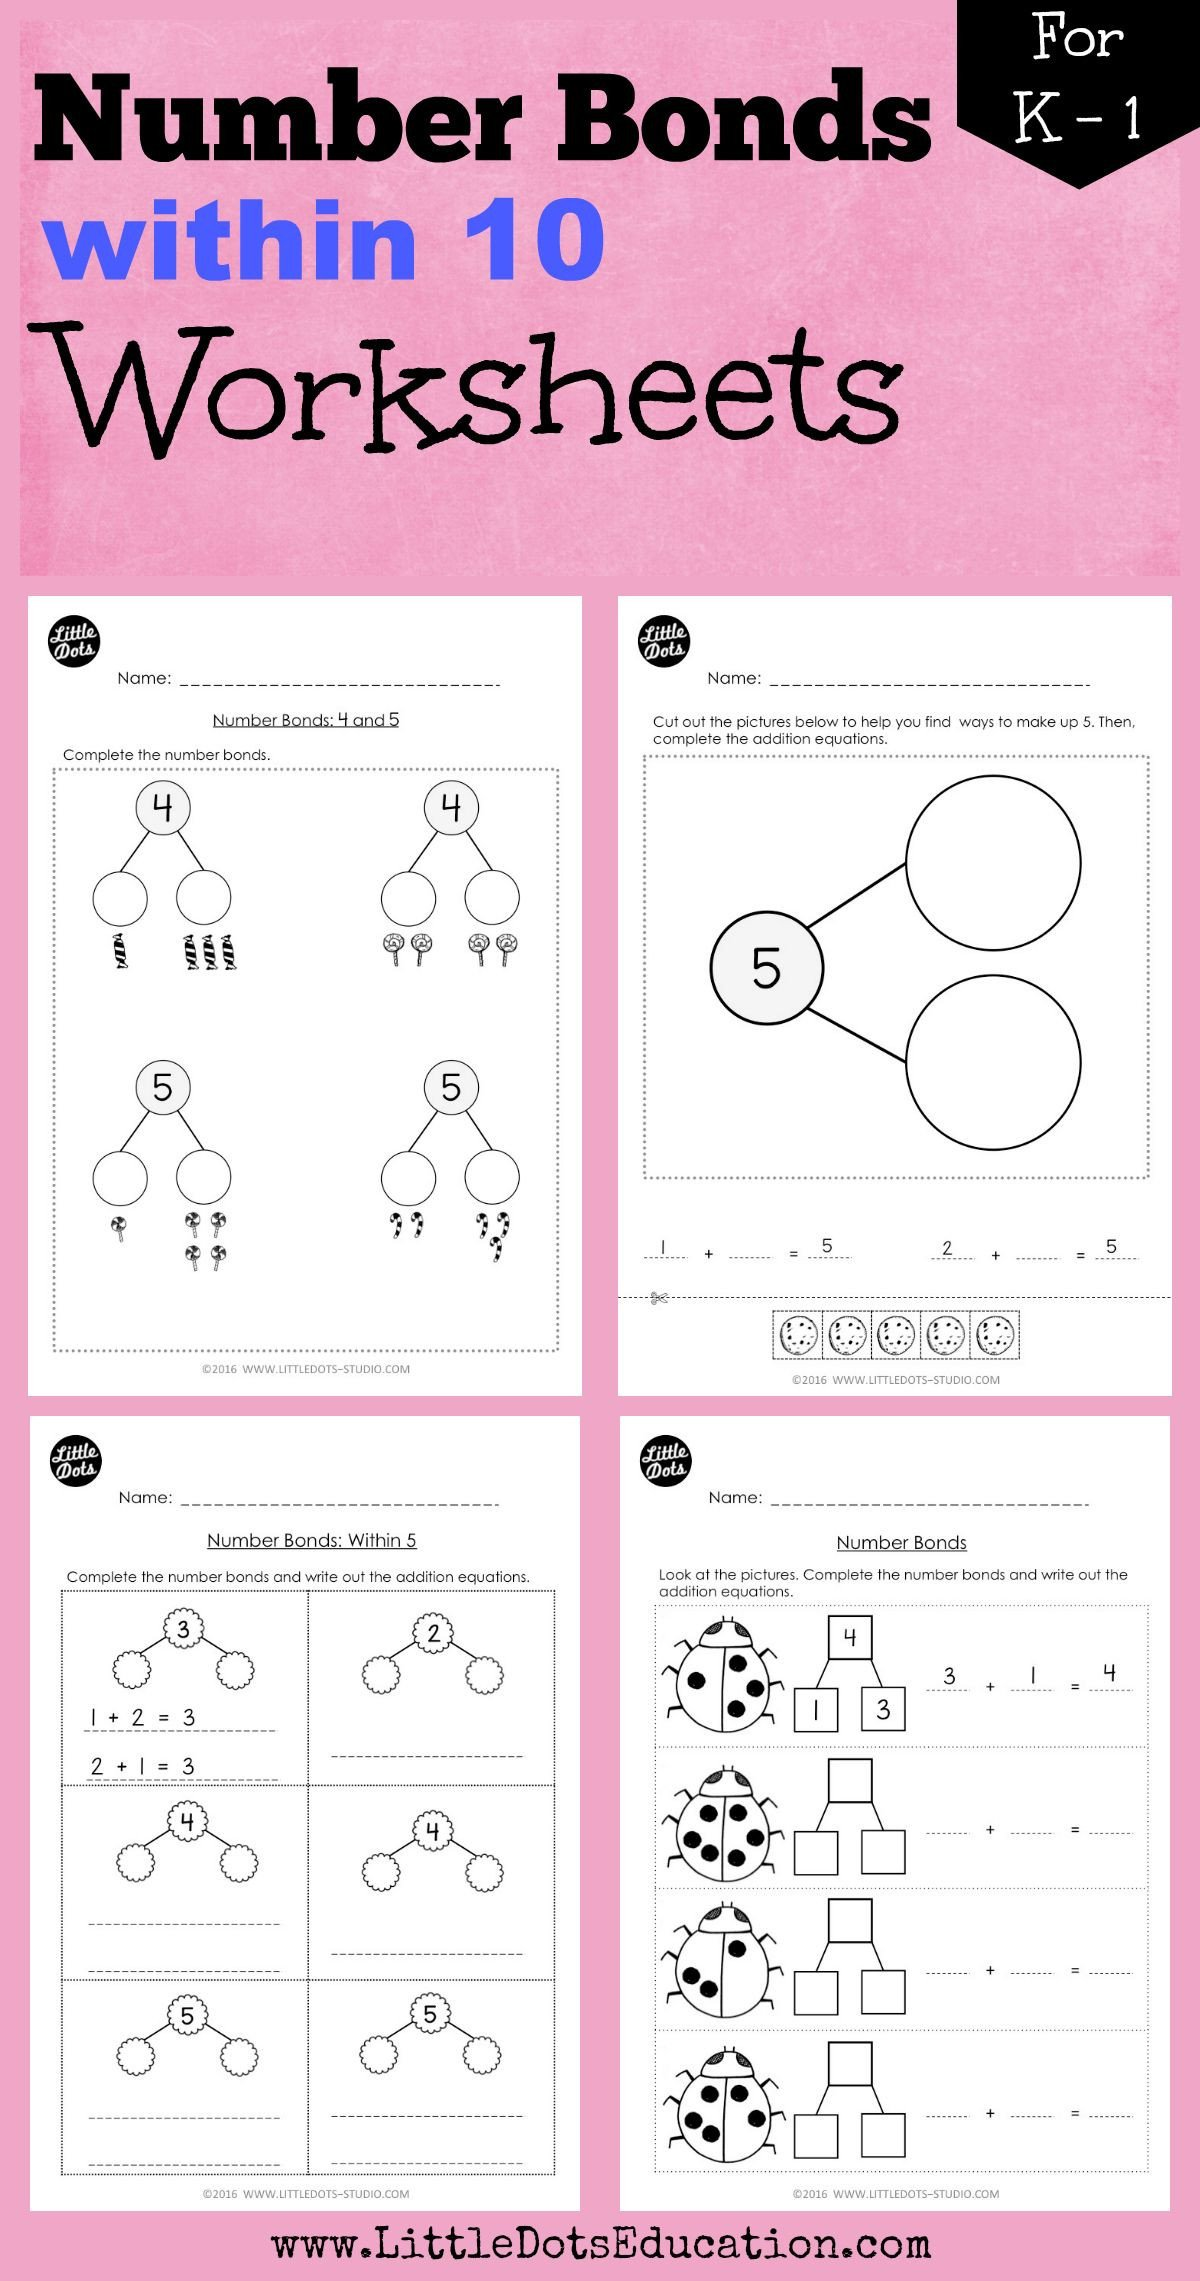 Kindergarten Number Bond Worksheets Kindergarten Math Number Bond Worksheets and Activities